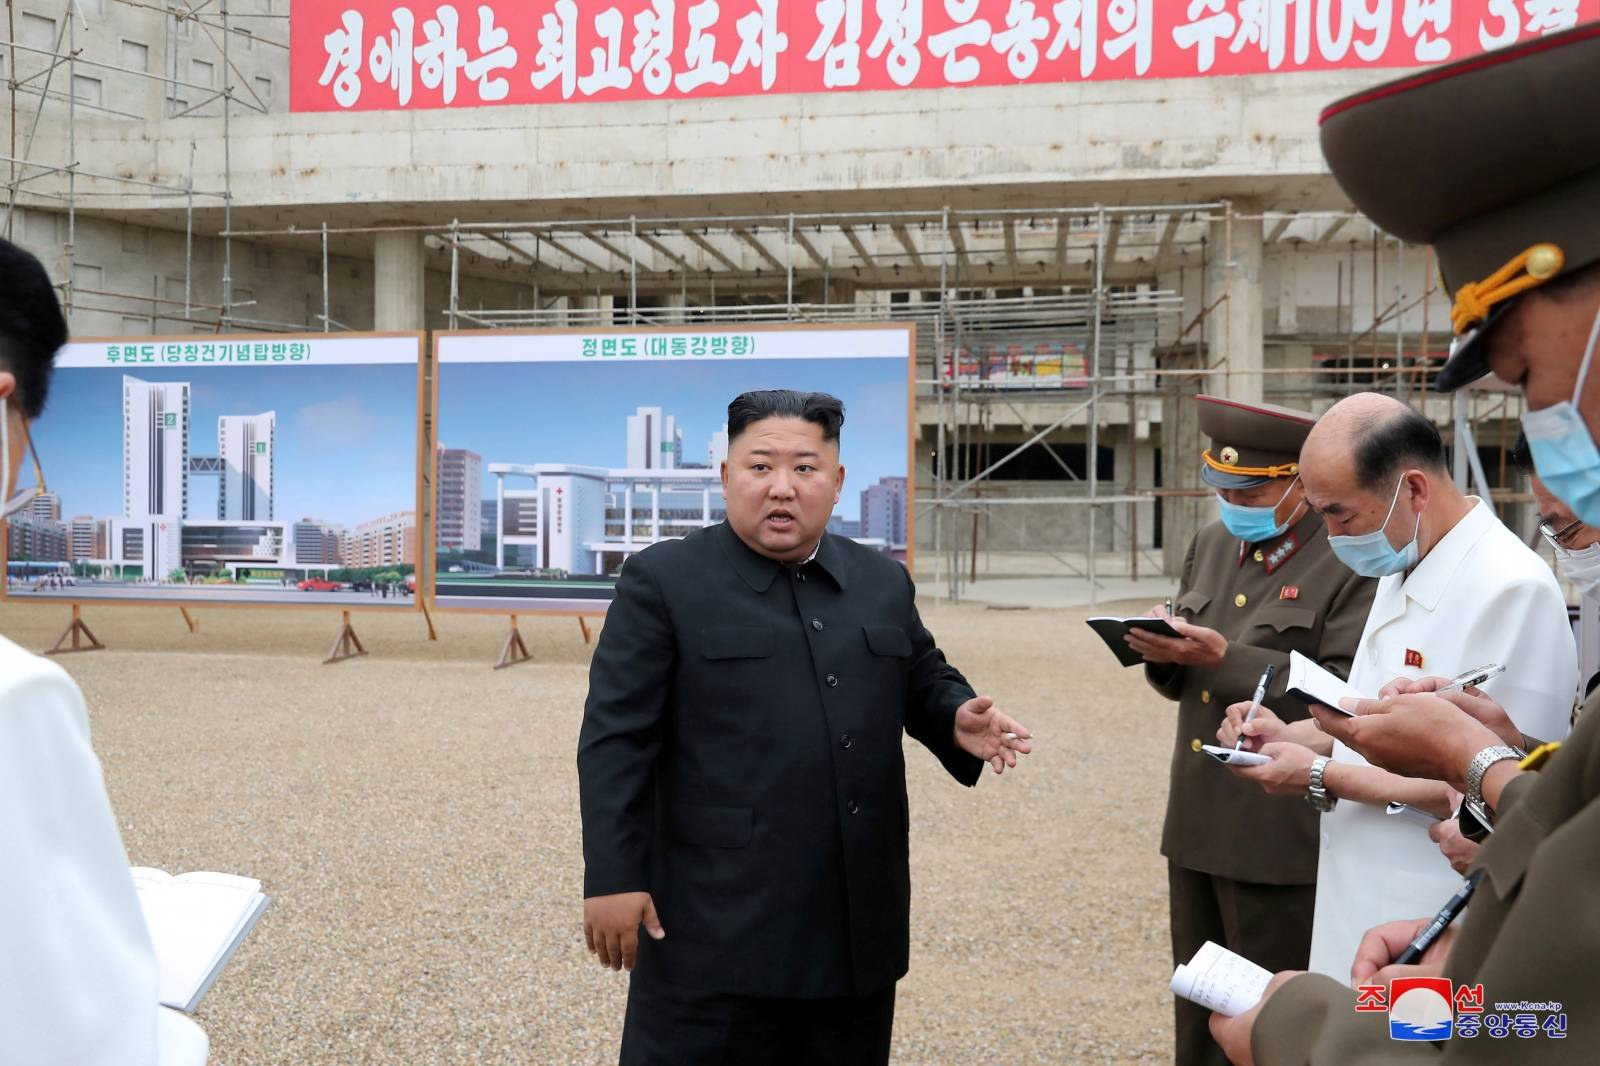 North Korean leader Kim Jong Un gives field guidance to the Pyongyang General Hospital under construction